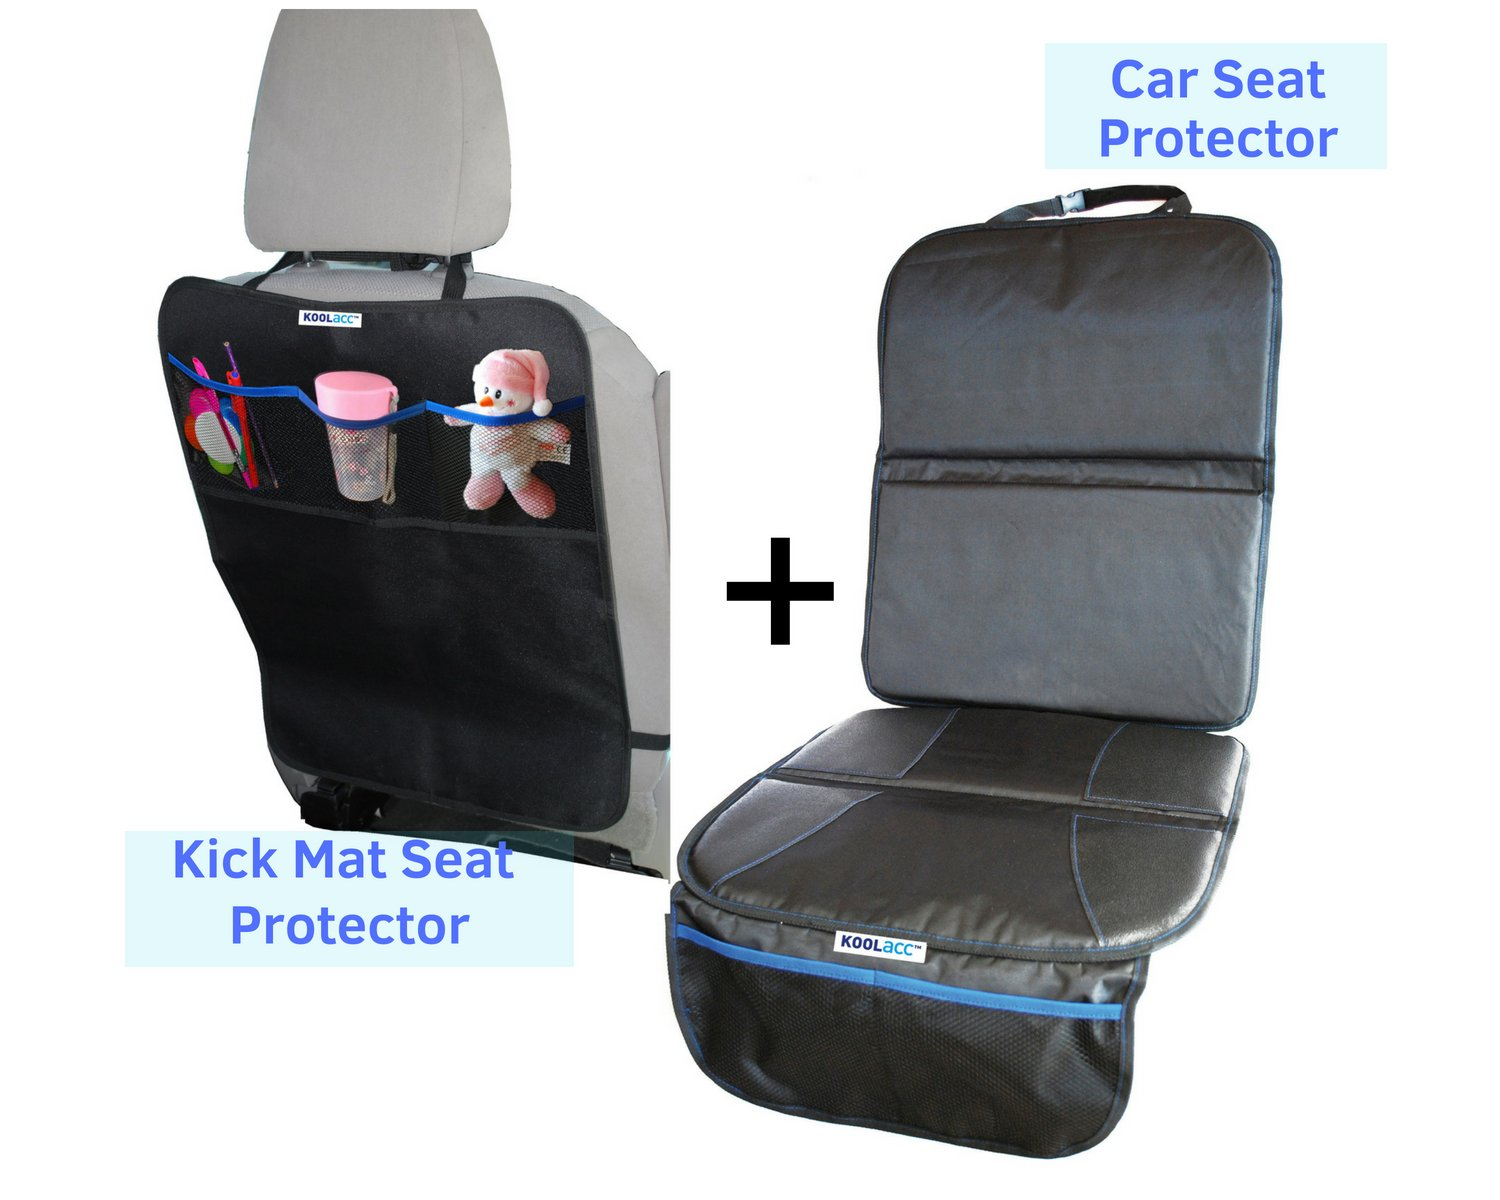 Car Seat Protector + Kick Mat Back Seat Protector Set : Perfect CarSeat Seat Protector fits Under Baby & Child Car Seat or Dogs, Cover Pad Protects Vehicle Leather Seats MMS Ltd KA101-CSP-KM-BNDL